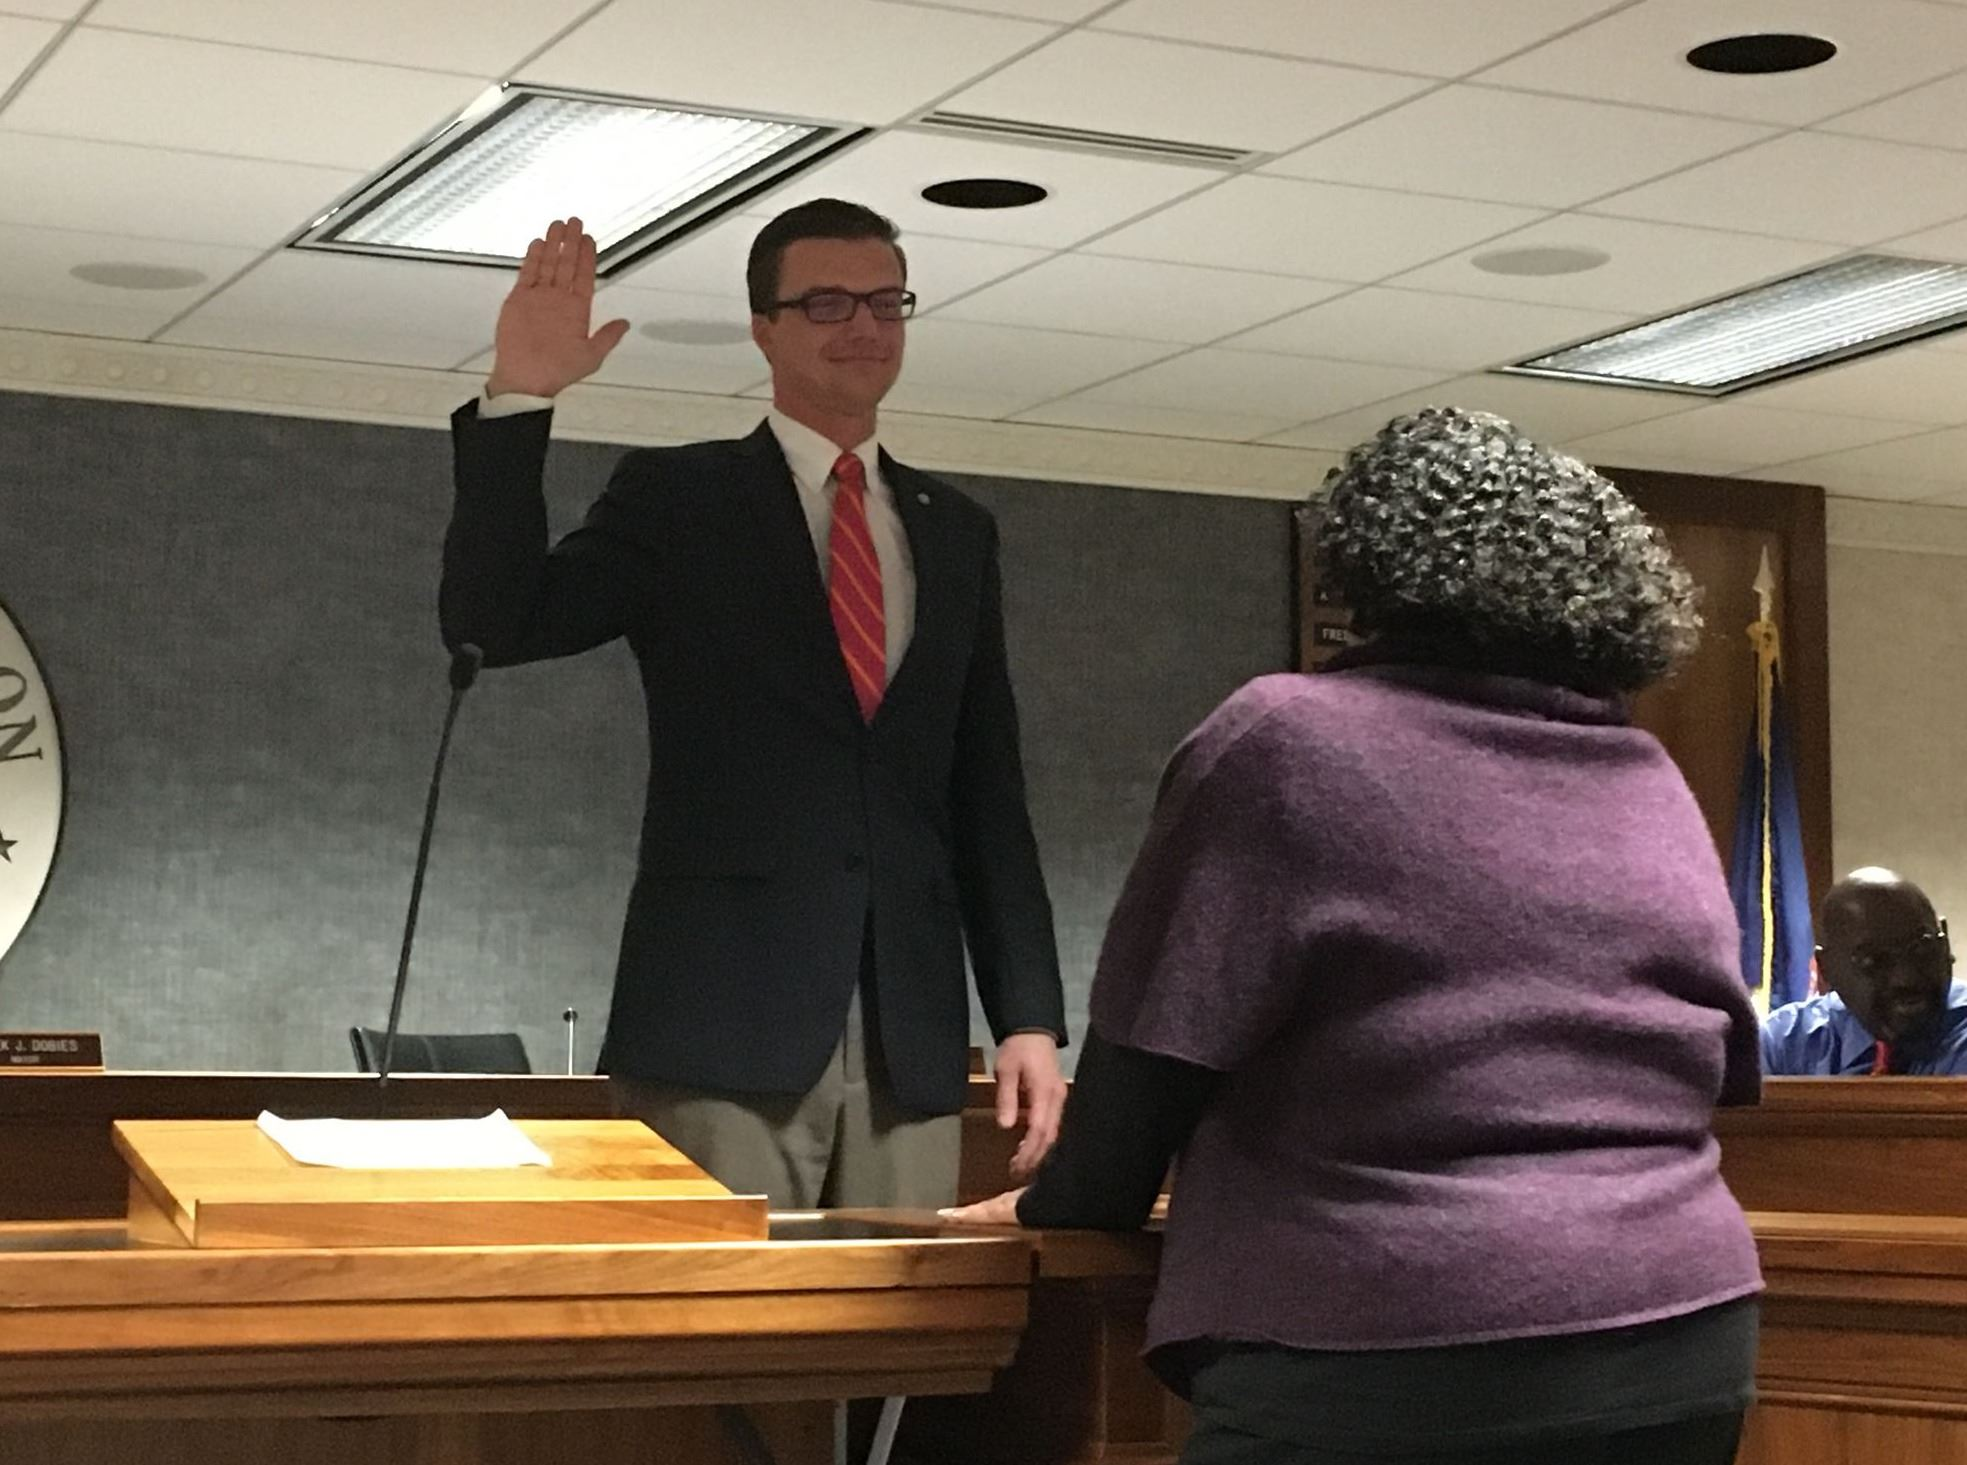 Mayor Derek Dobies with his hand up taking the oath of office